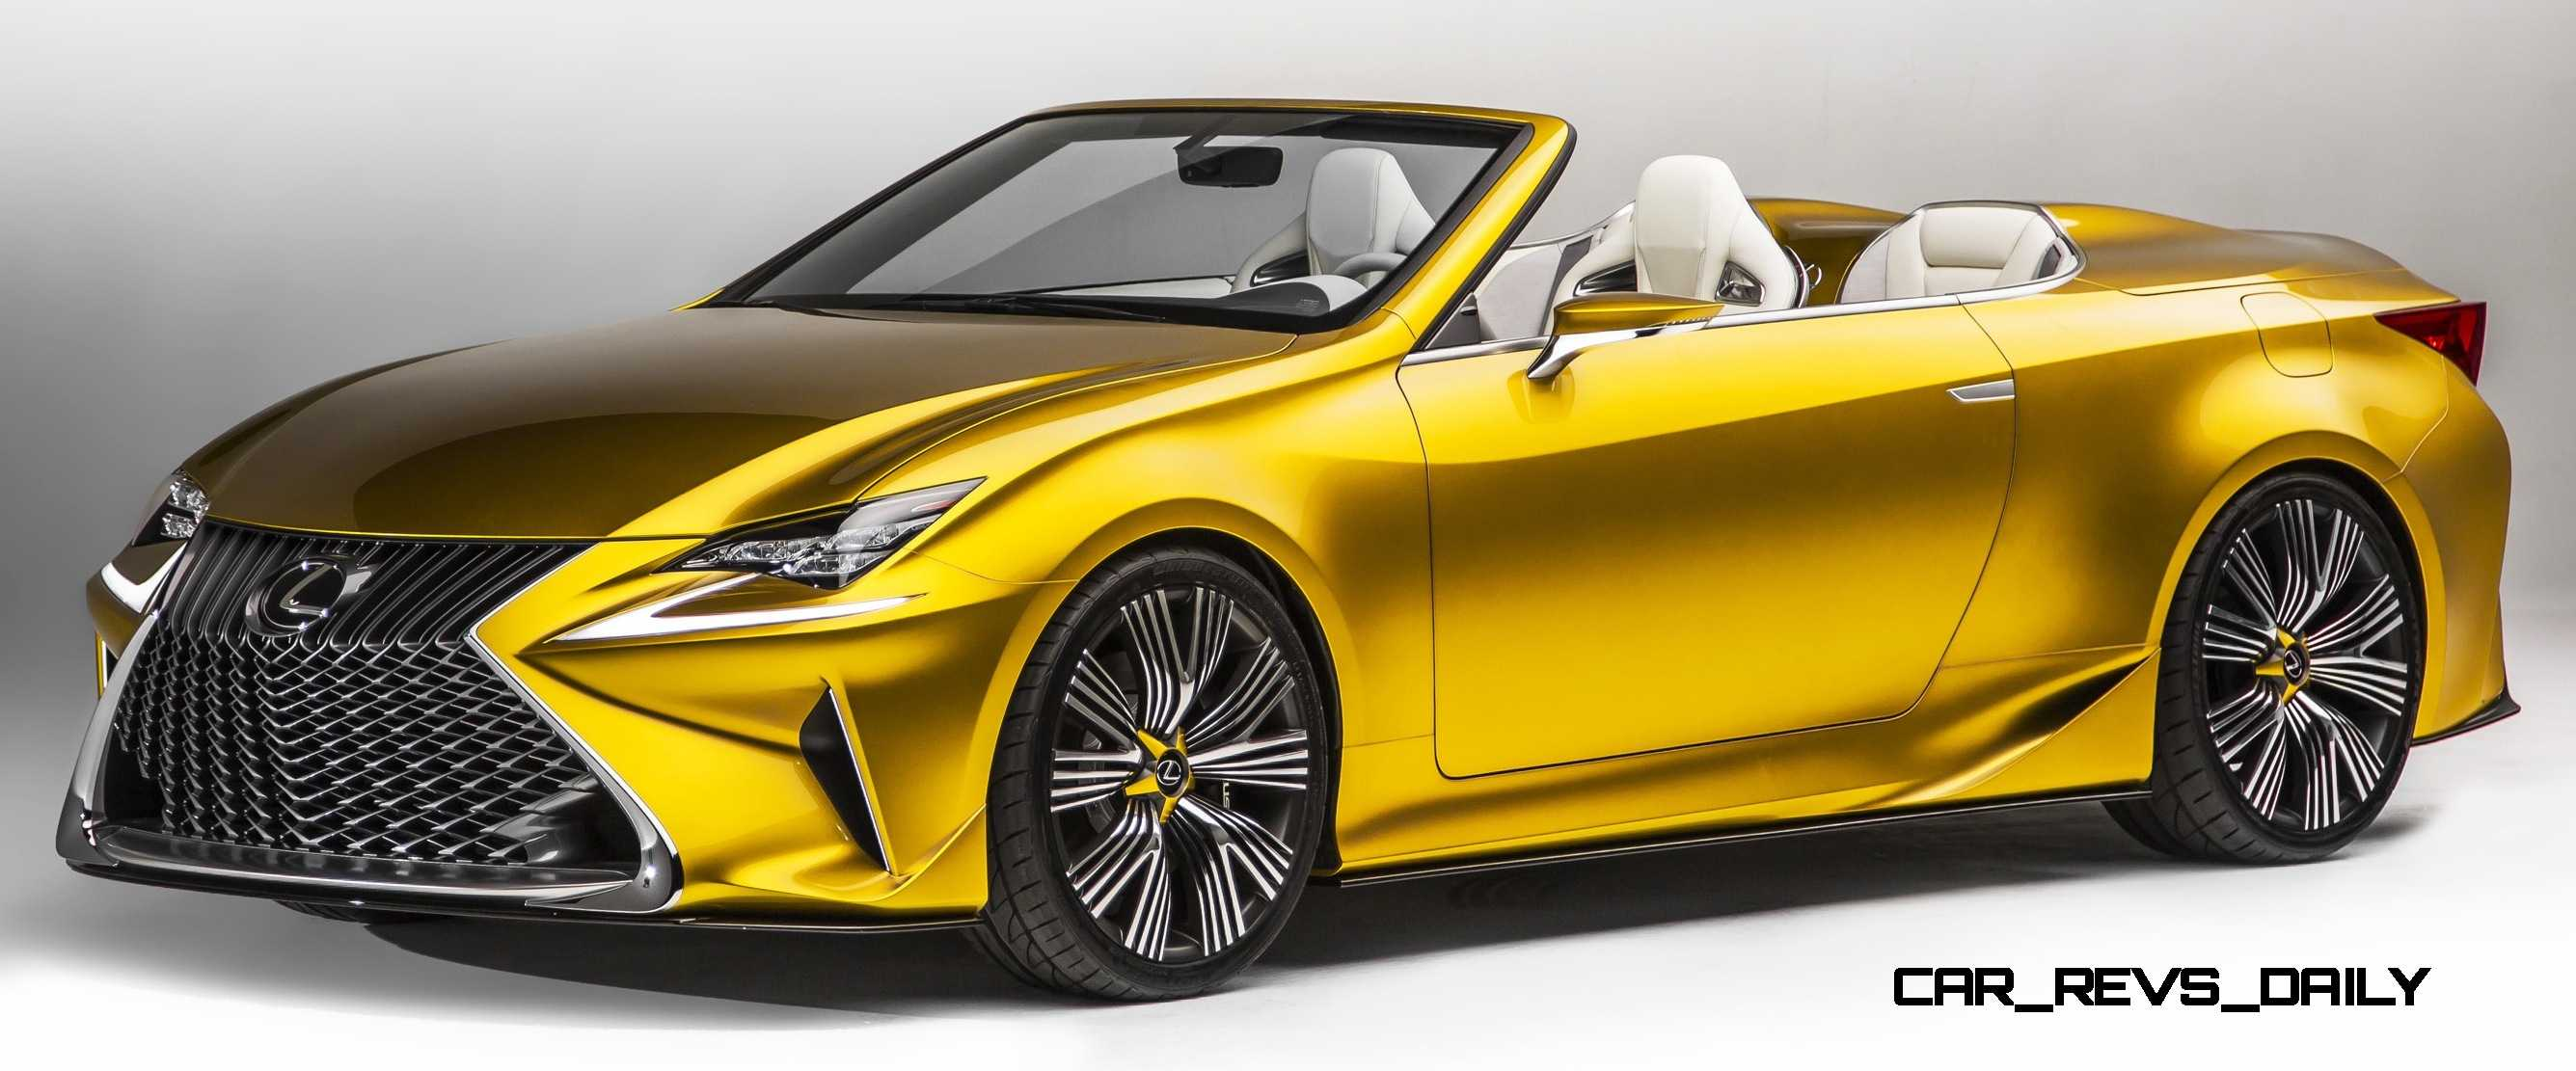 2014 lexus lfc2 concept cabrio is truly miraculous a design so beautiful it makes audi weep. Black Bedroom Furniture Sets. Home Design Ideas